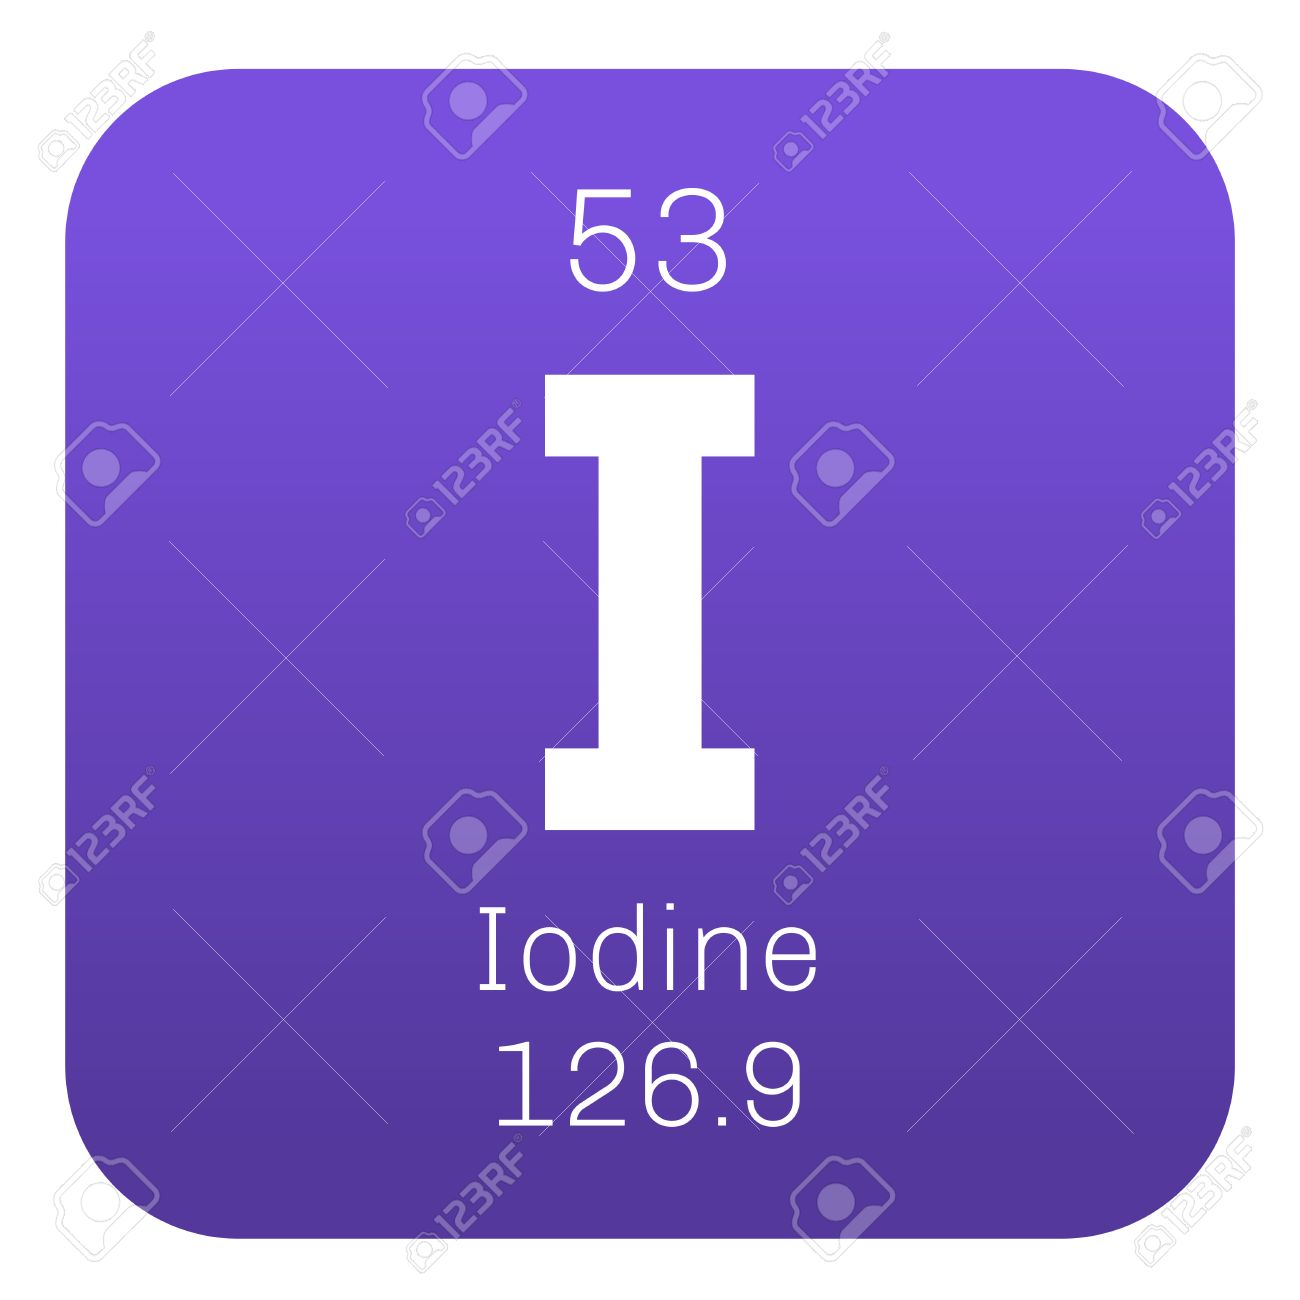 Iodine chemical element colored icon with atomic number and iodine chemical element colored icon with atomic number and atomic weight chemical element of urtaz Images